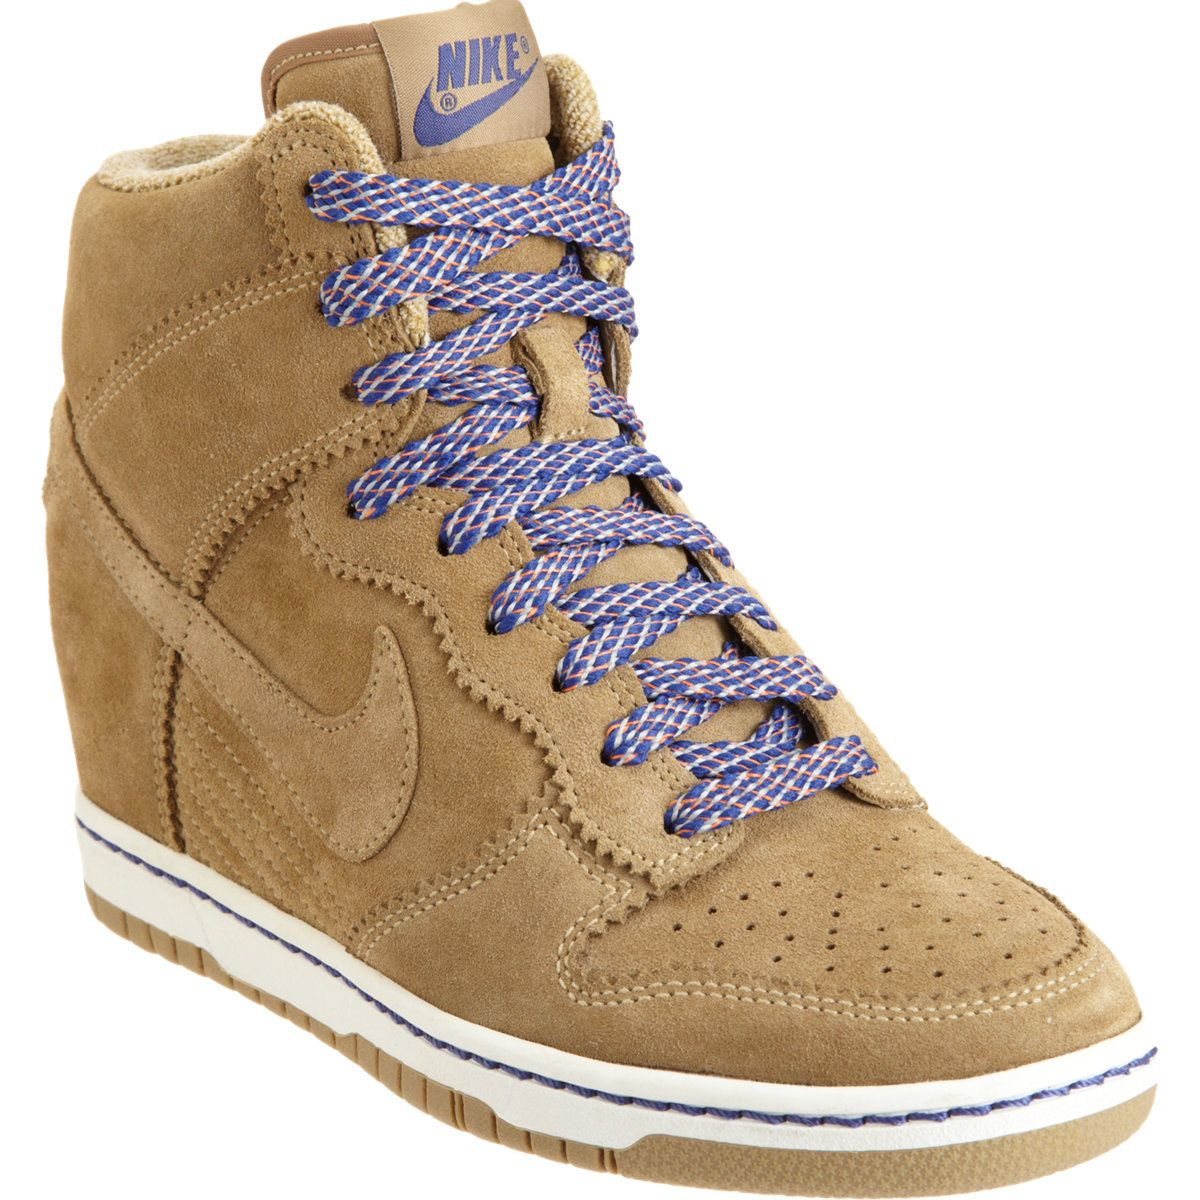 Nike Dunk Sky High Wedge in Brown (multicolor)